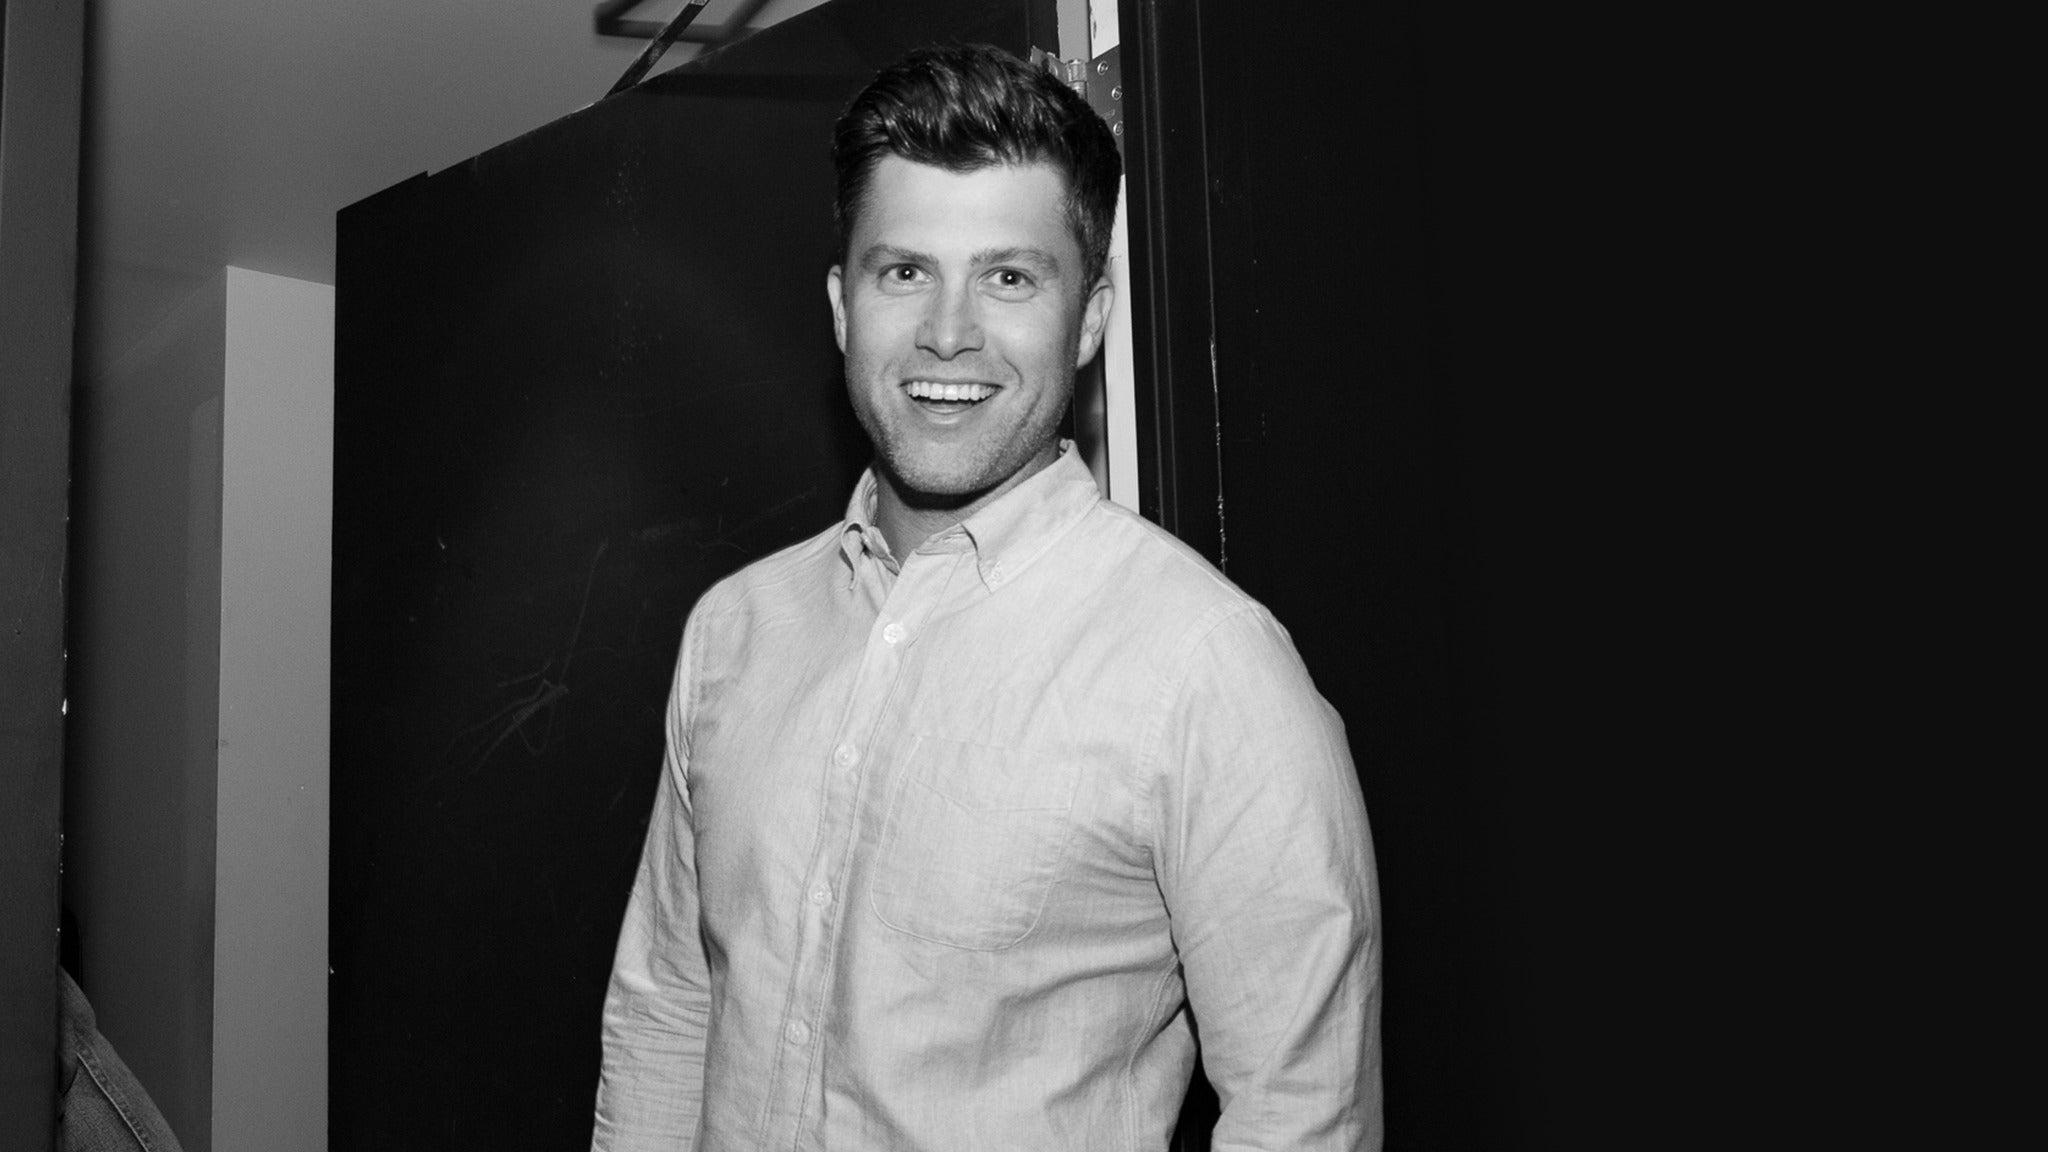 Colin Jost at The Wellmont Theater